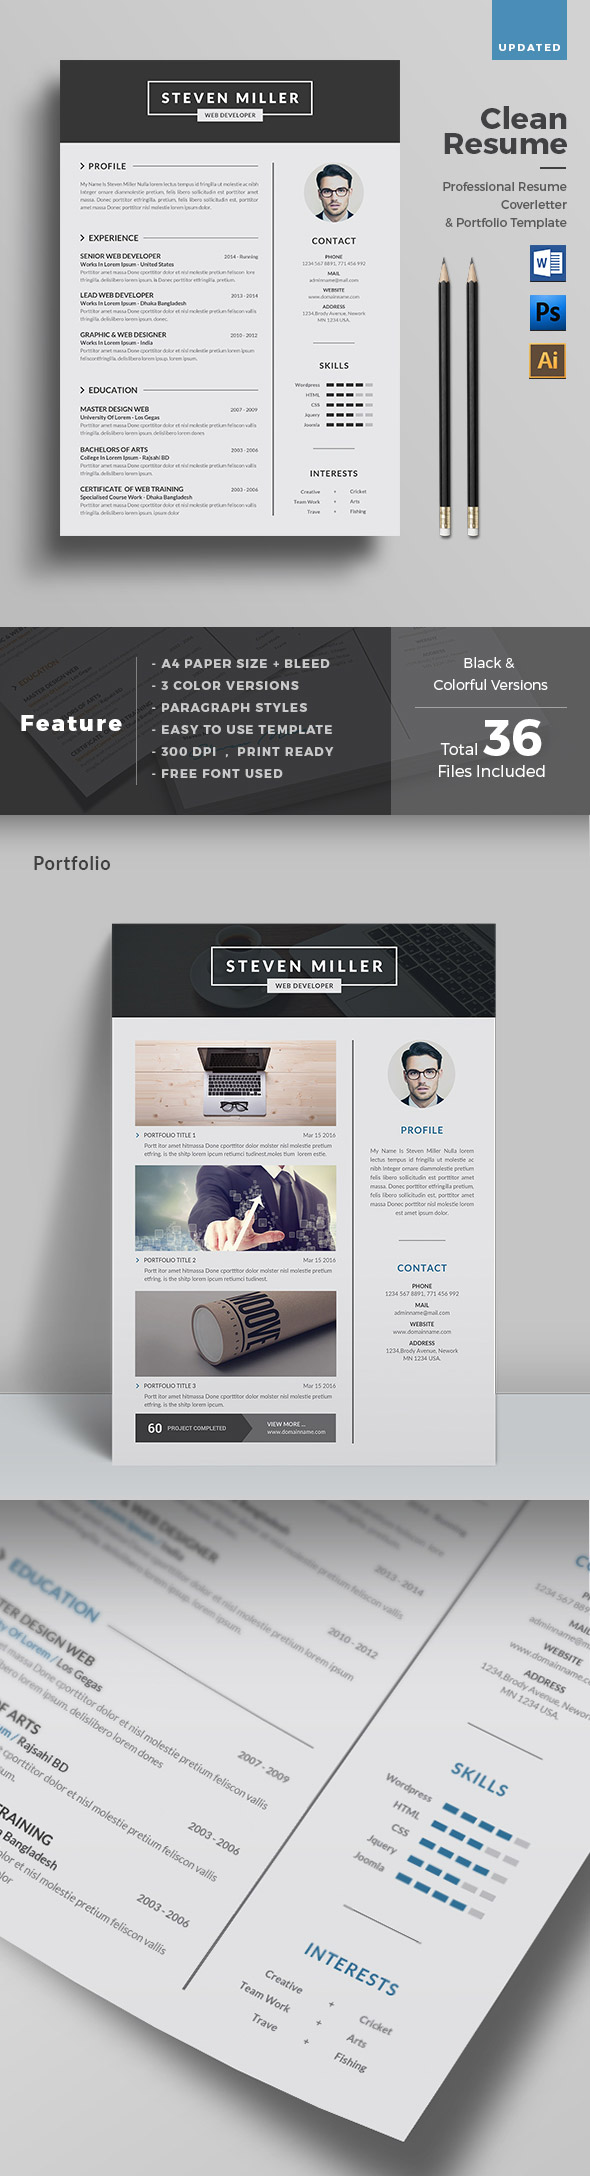 creative dynamic resume cv templates for professional jobs in free cutting edge drafter Resume Free Dynamic Resume Templates